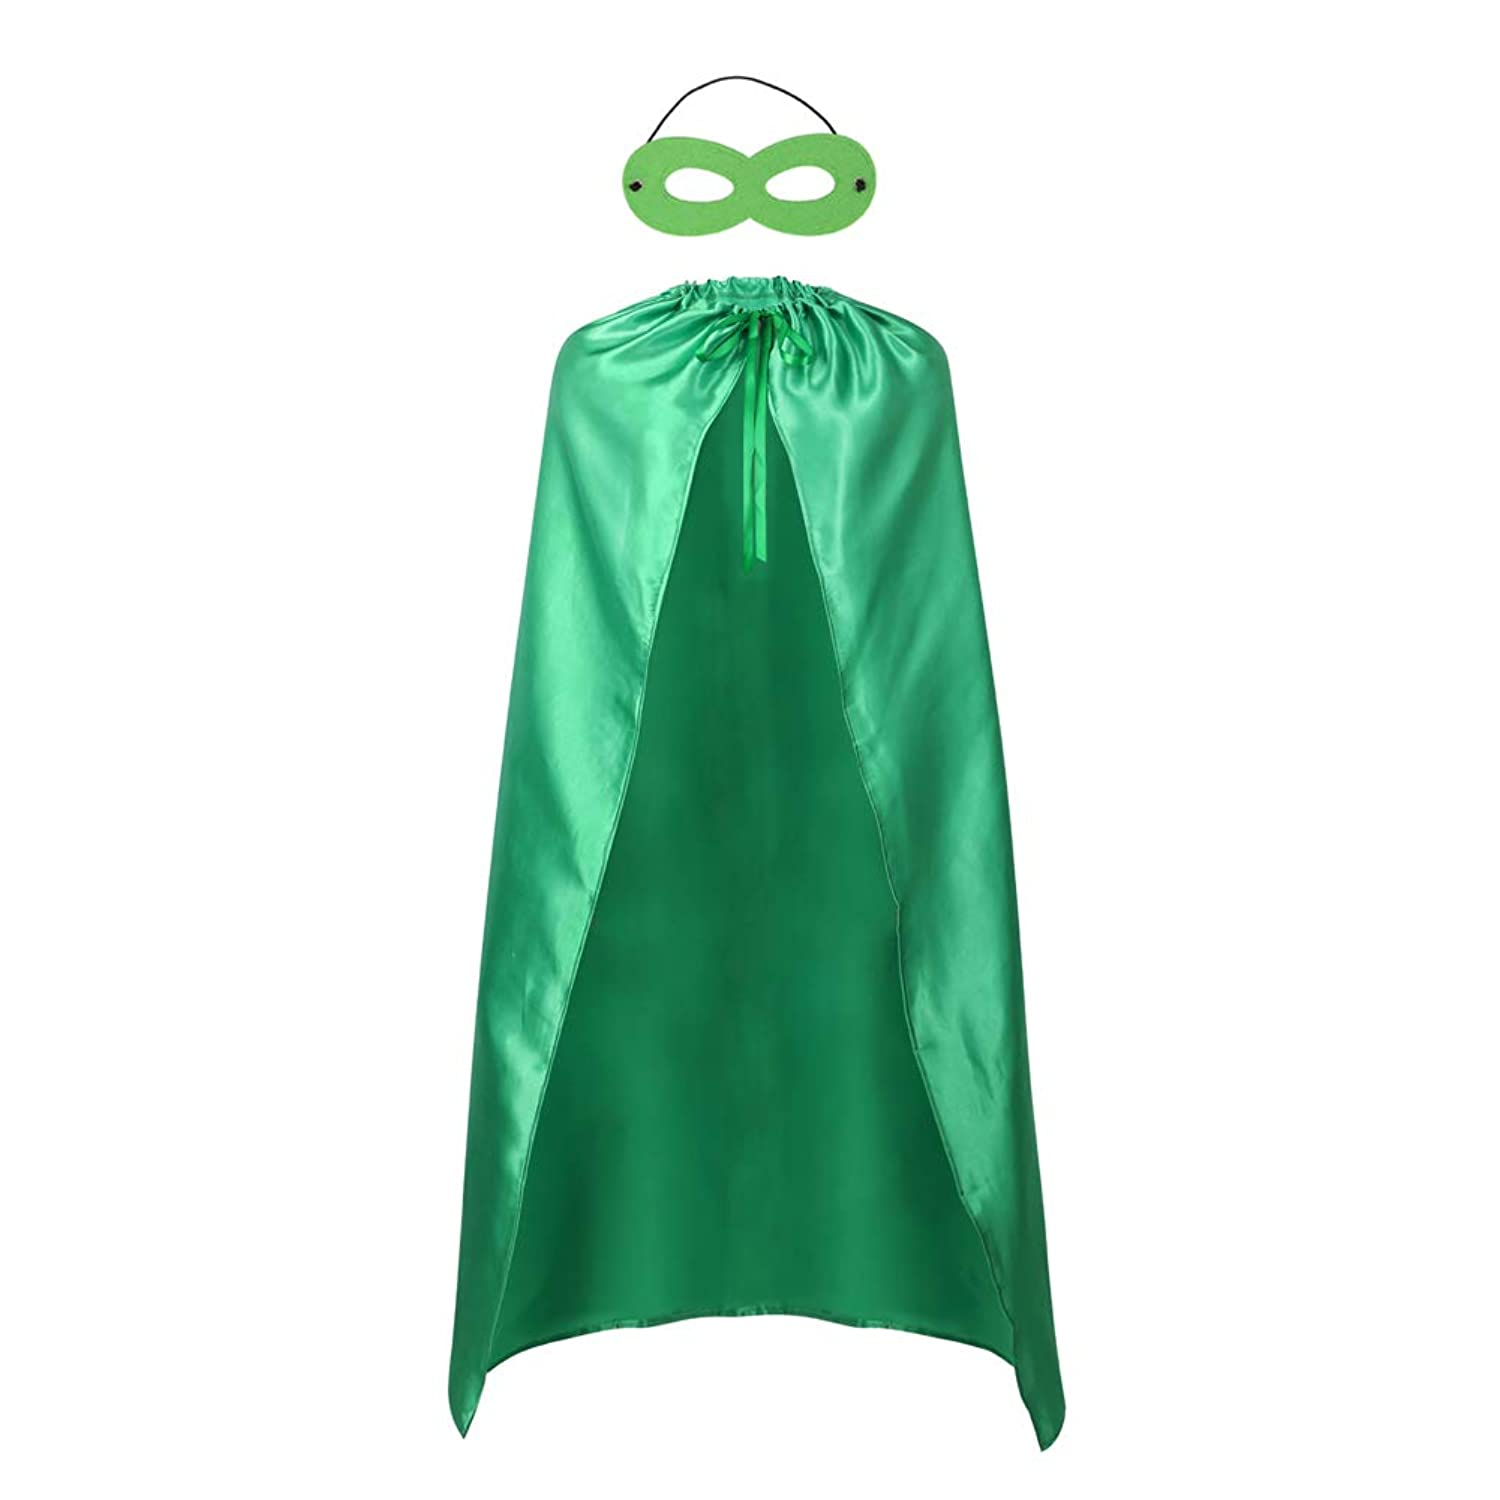 Adults Superhero Capes and Mask Set - Men & Women Cosplay Fancy Cloak-DIY Dress Up Halloween Costume